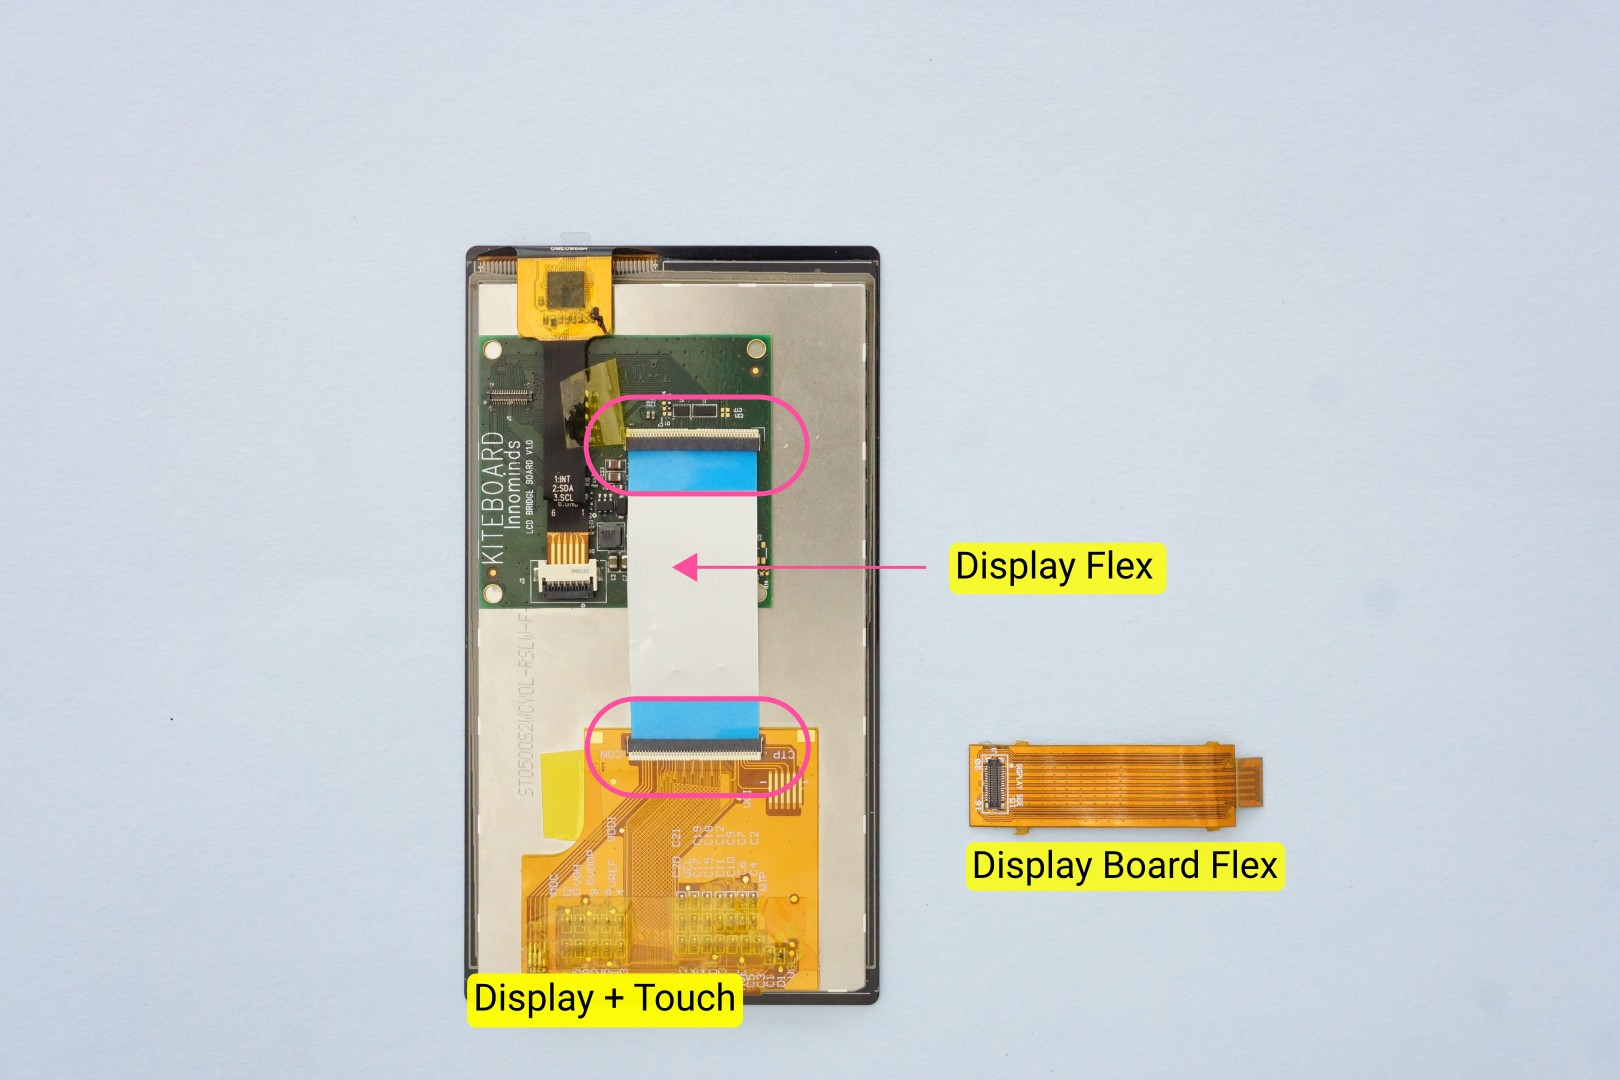 Building Poorna Your First Kitephone The Two Circuits Carefully Compare Pictures To Breadboard It Is A Layer Flex Cable Designed Carry Impedance Controlled Signals With Proper Reference Planes